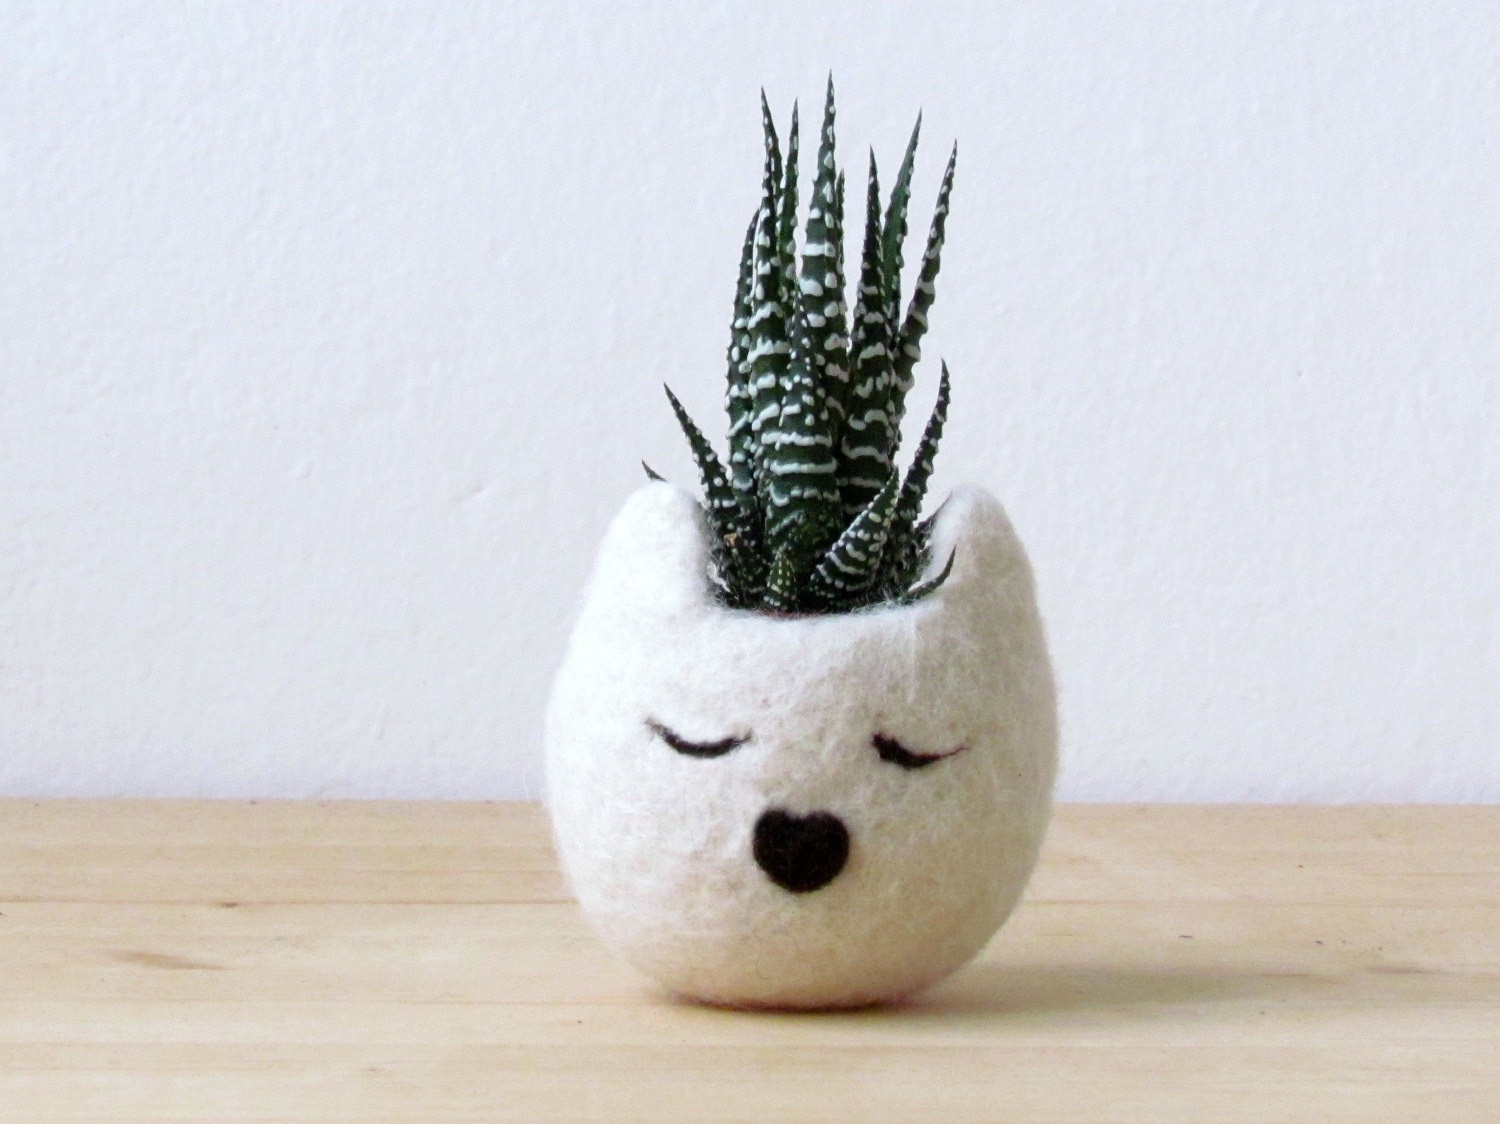 Cat planter / Small pot for succulents / white Cat head planter / Felt succulent